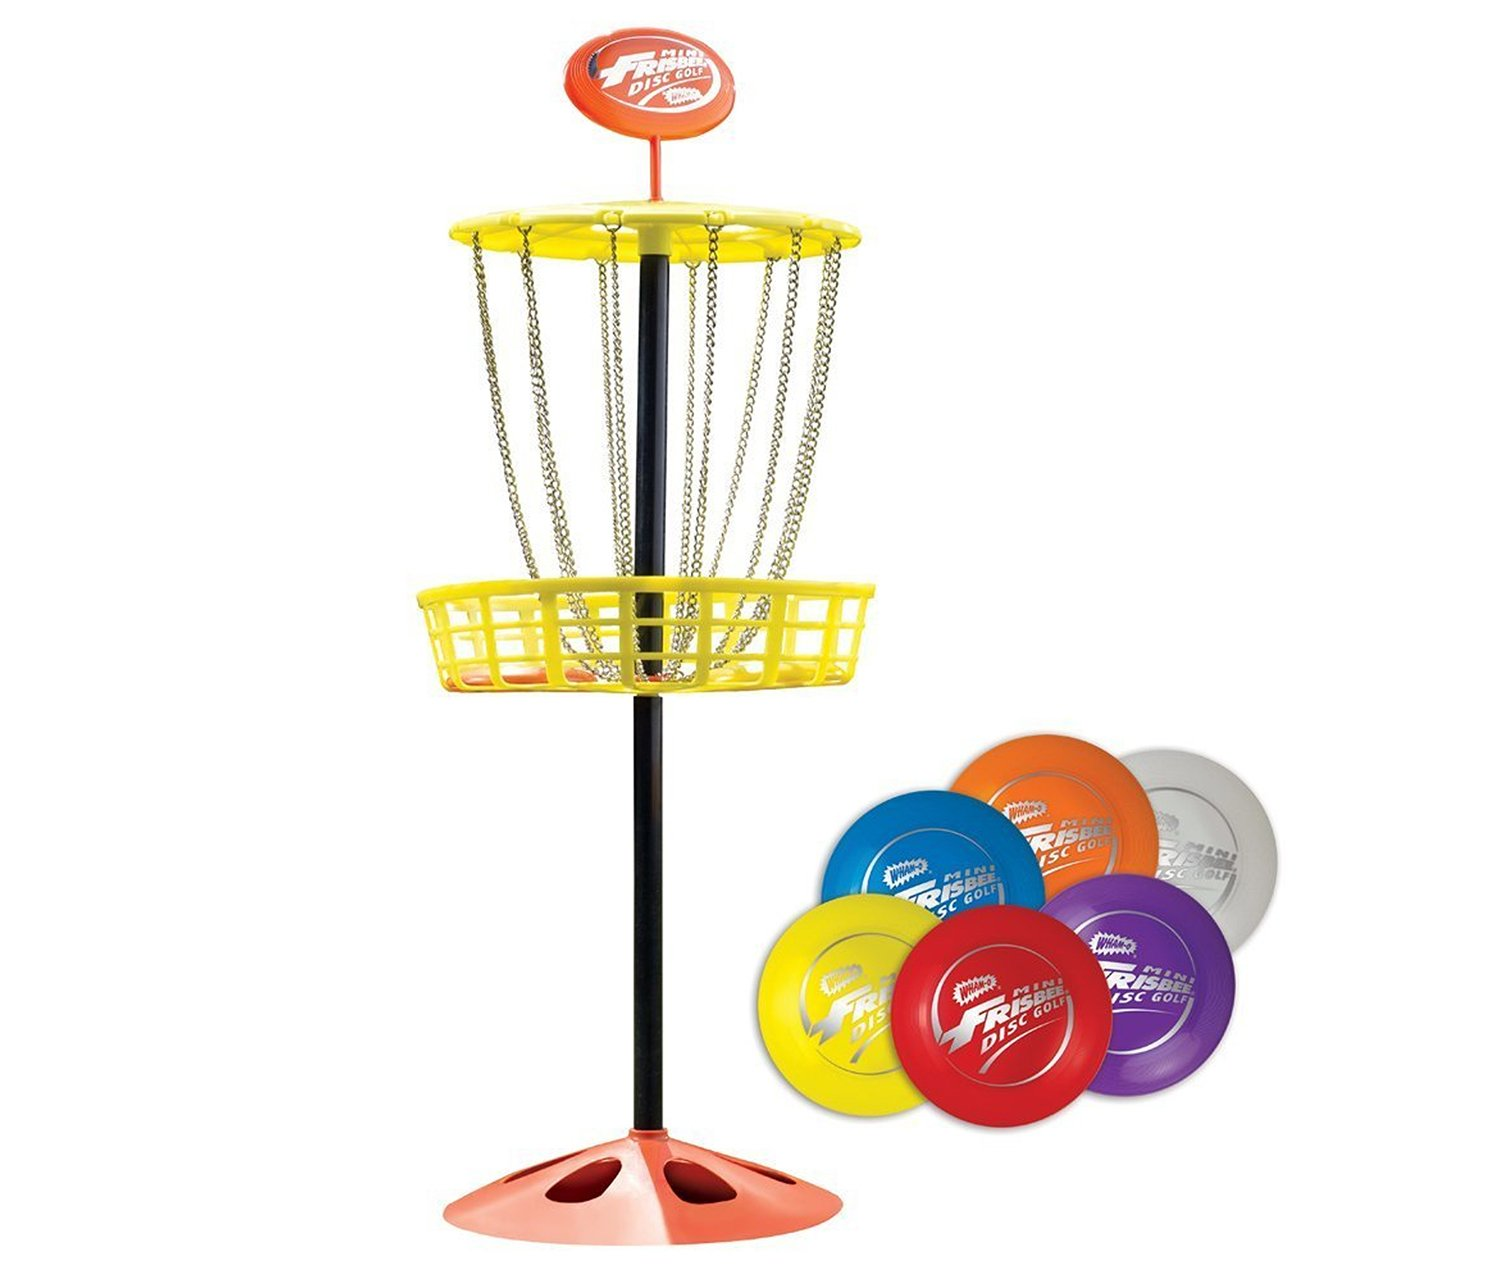 Mozlly Multipack - Wham-O Mini Frisbee Golf Disc - 11.6 x 11.6 x 28 inch - Outdoor Play Set (Pack of 6) - Item #S119039_X6